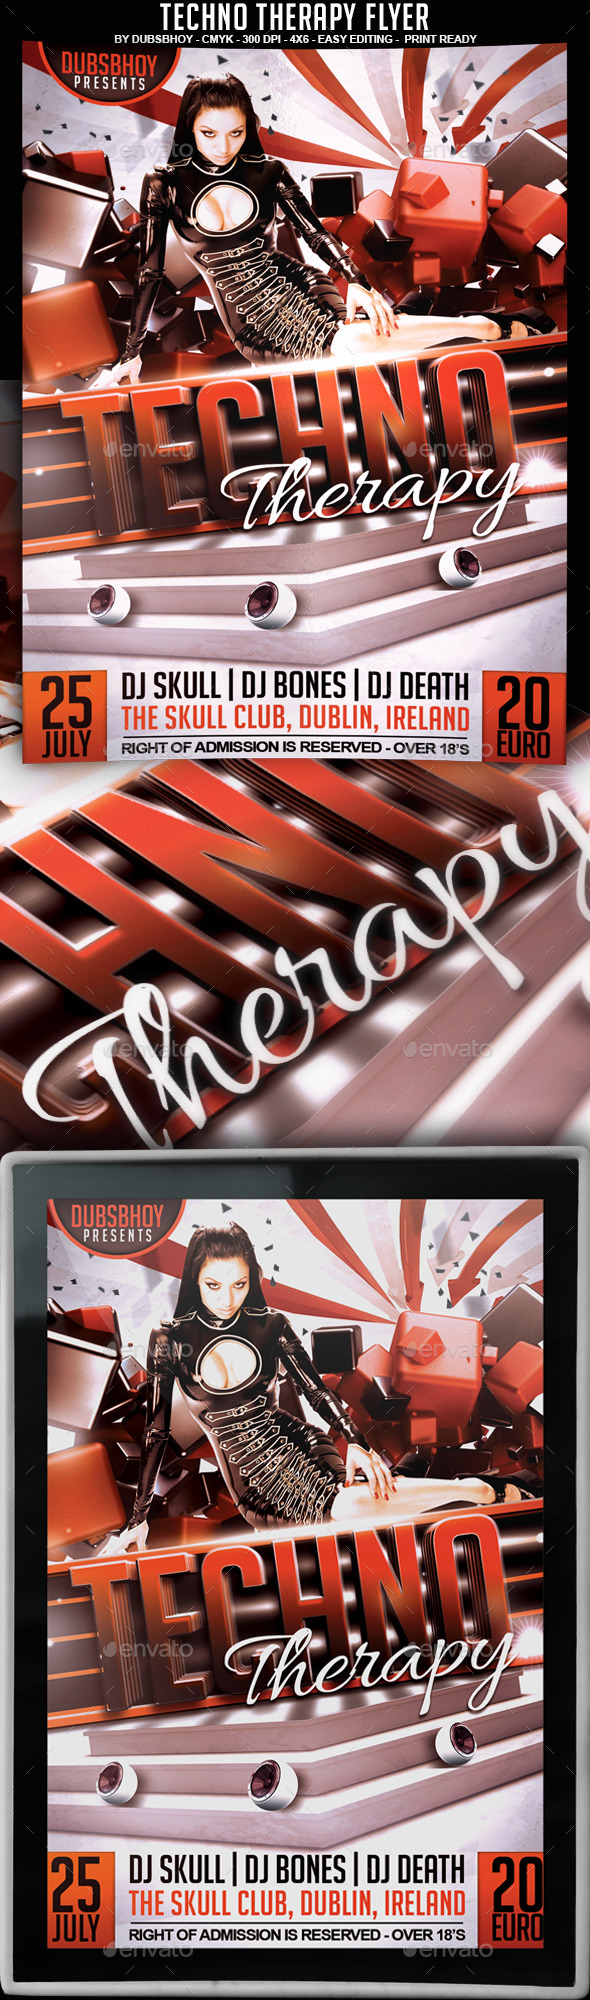 Techno Therapy Flyer - Flyers Print Templates